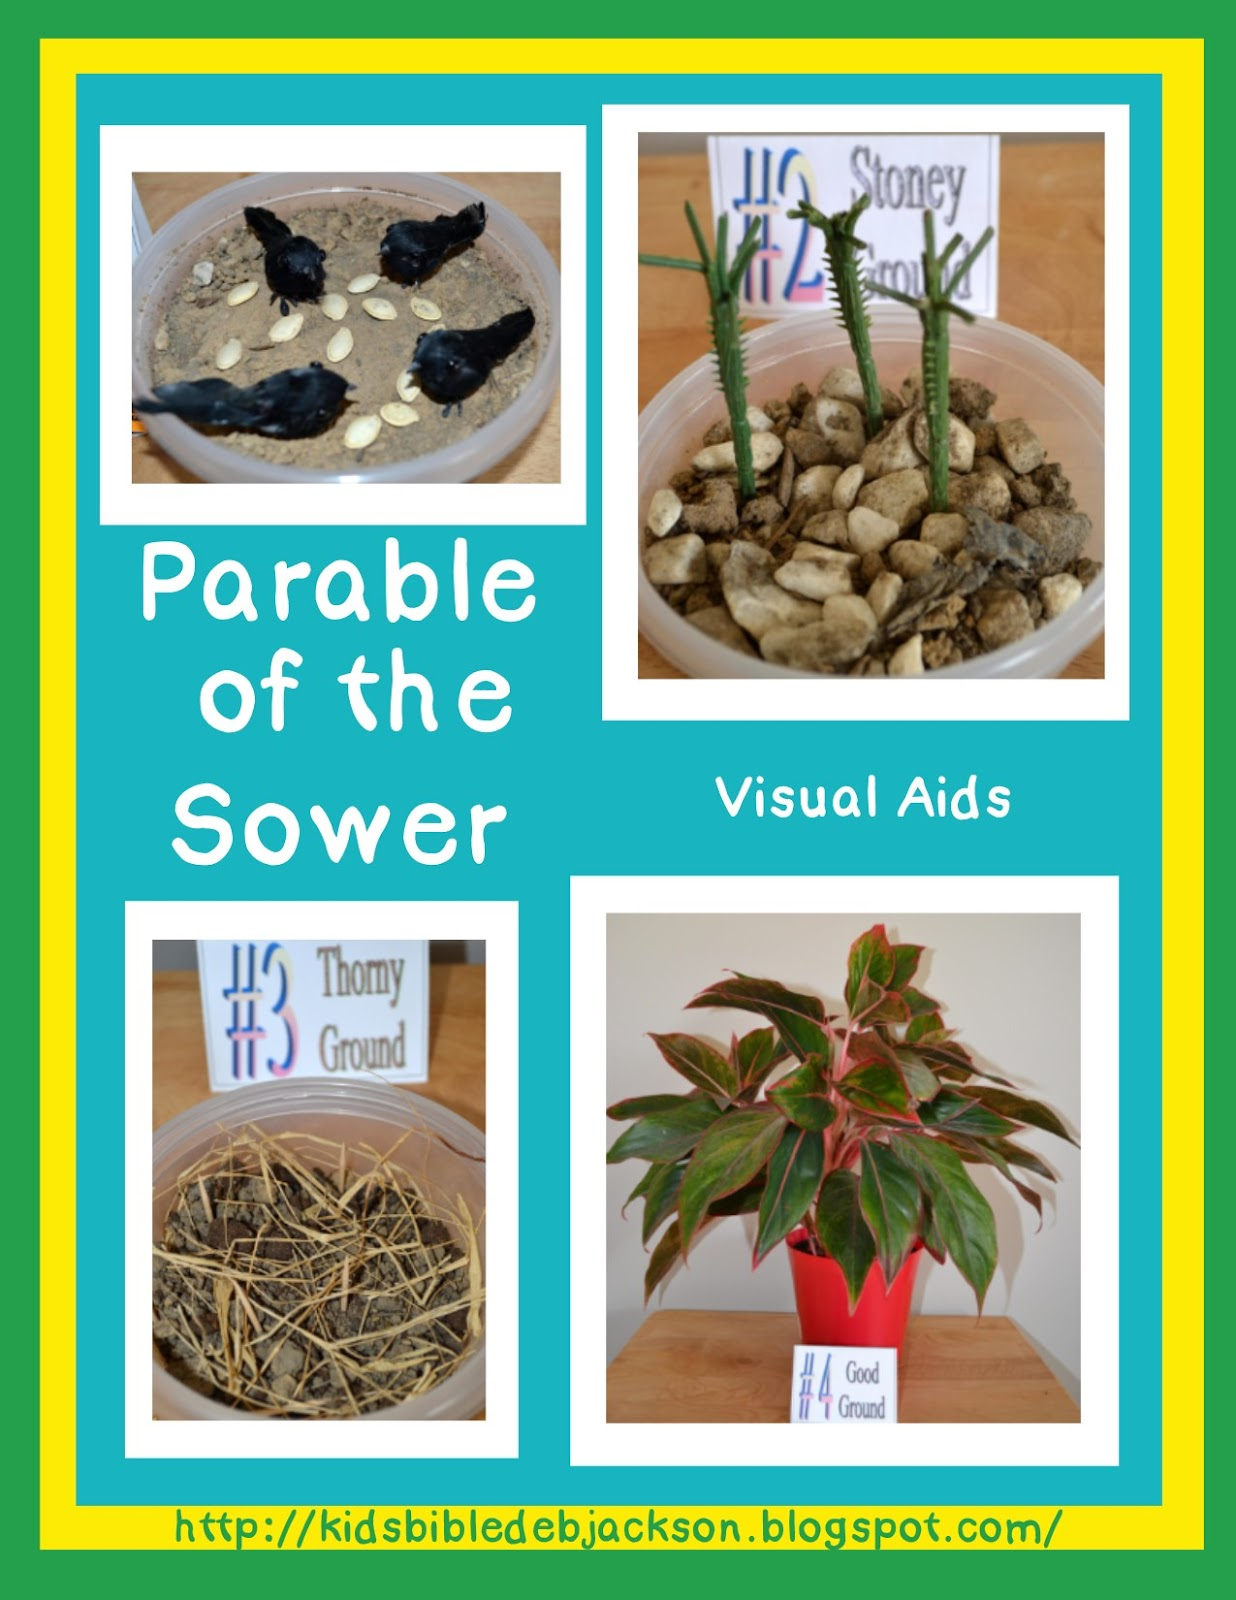 http://kidsbibledebjackson.blogspot.com/2014/09/parable-of-sower.html